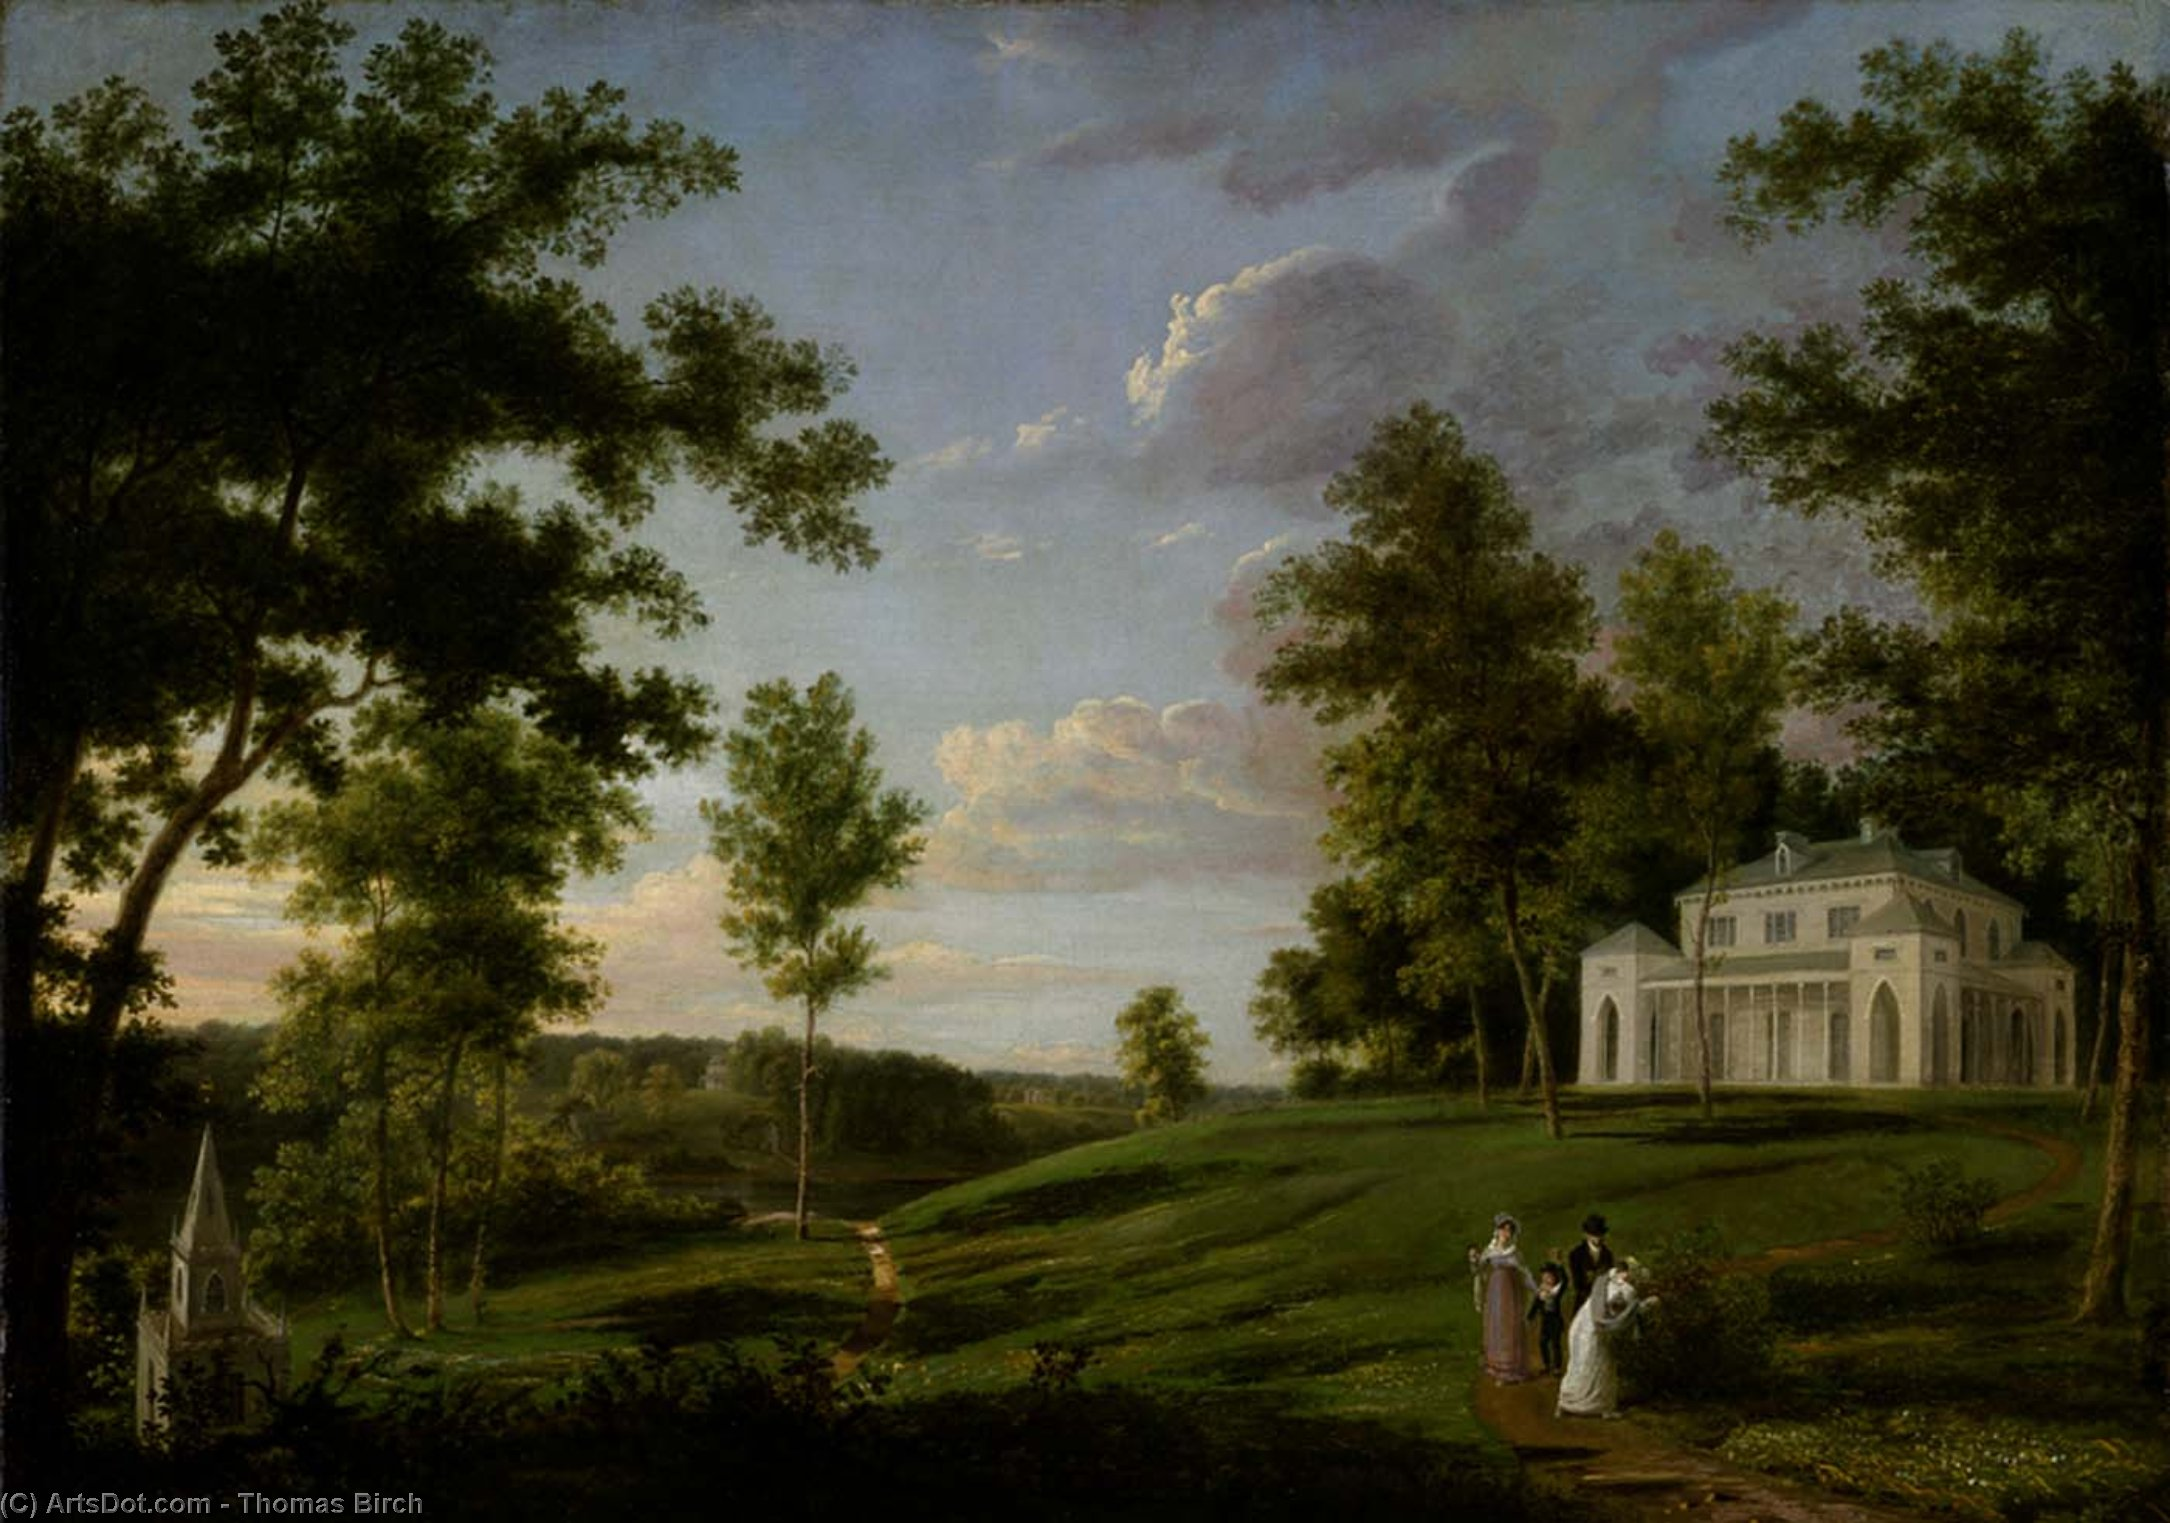 sudeste vista de sedgeley park , la plaza país de james cowles fisher , Esq ., aceite de Thomas Birch (1779-1851, United Kingdom)